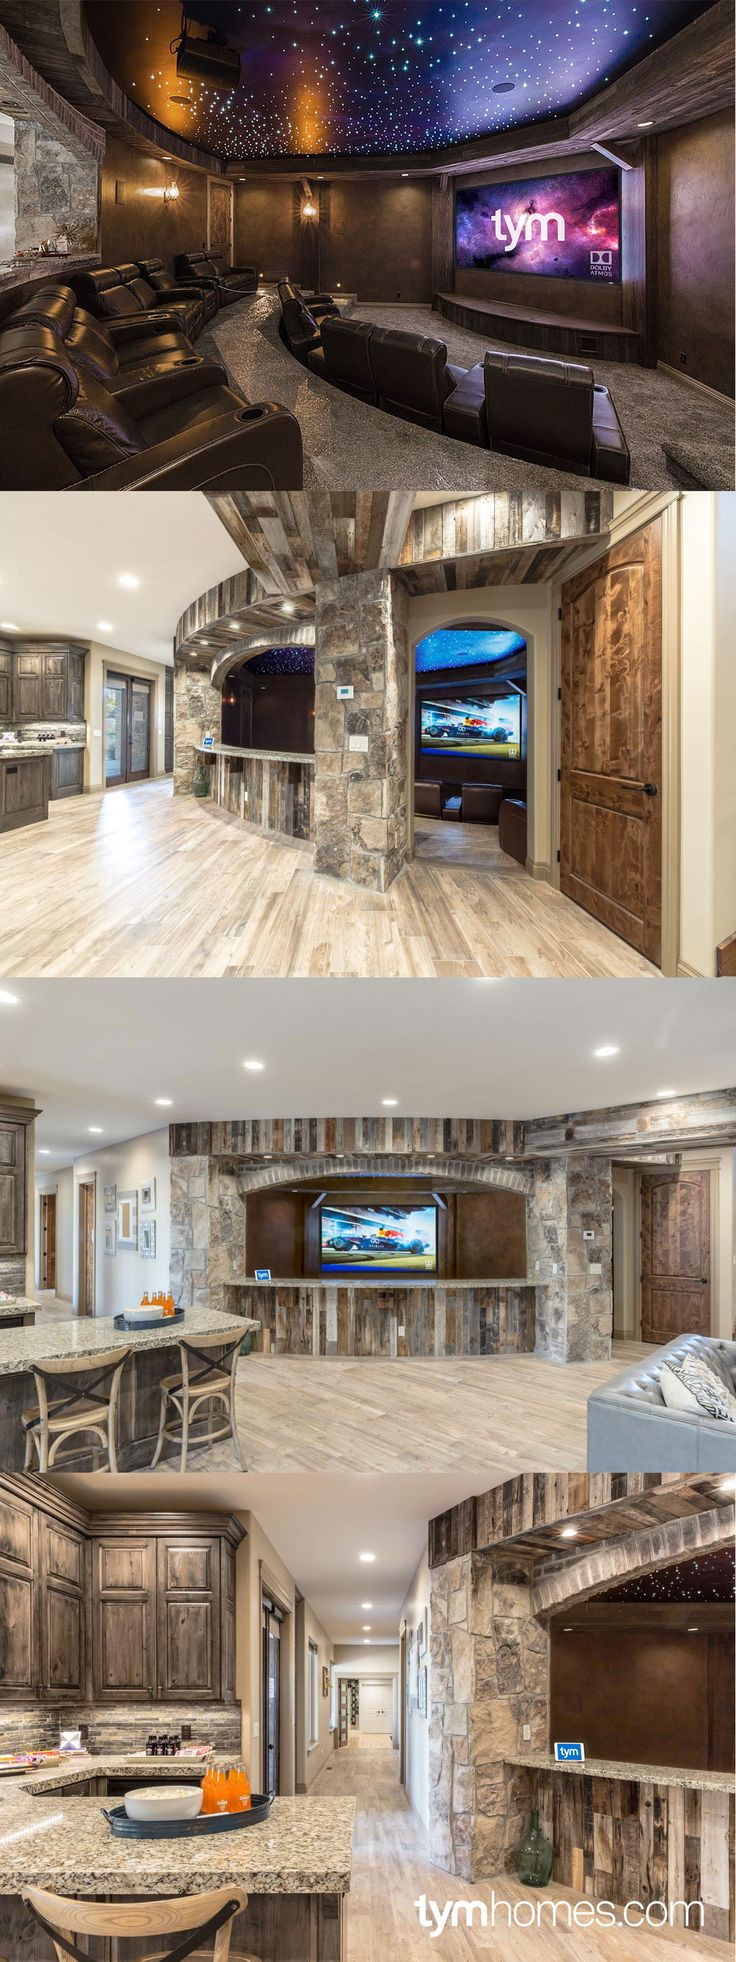 """People's Choice Award"" 2015 Salt Lake Parade of Homes. Home entertainment & automation control by TYM. Featuring #SavantSystems control, Sony 4K Home Theater with Dolby Atmos, whole-home audio."